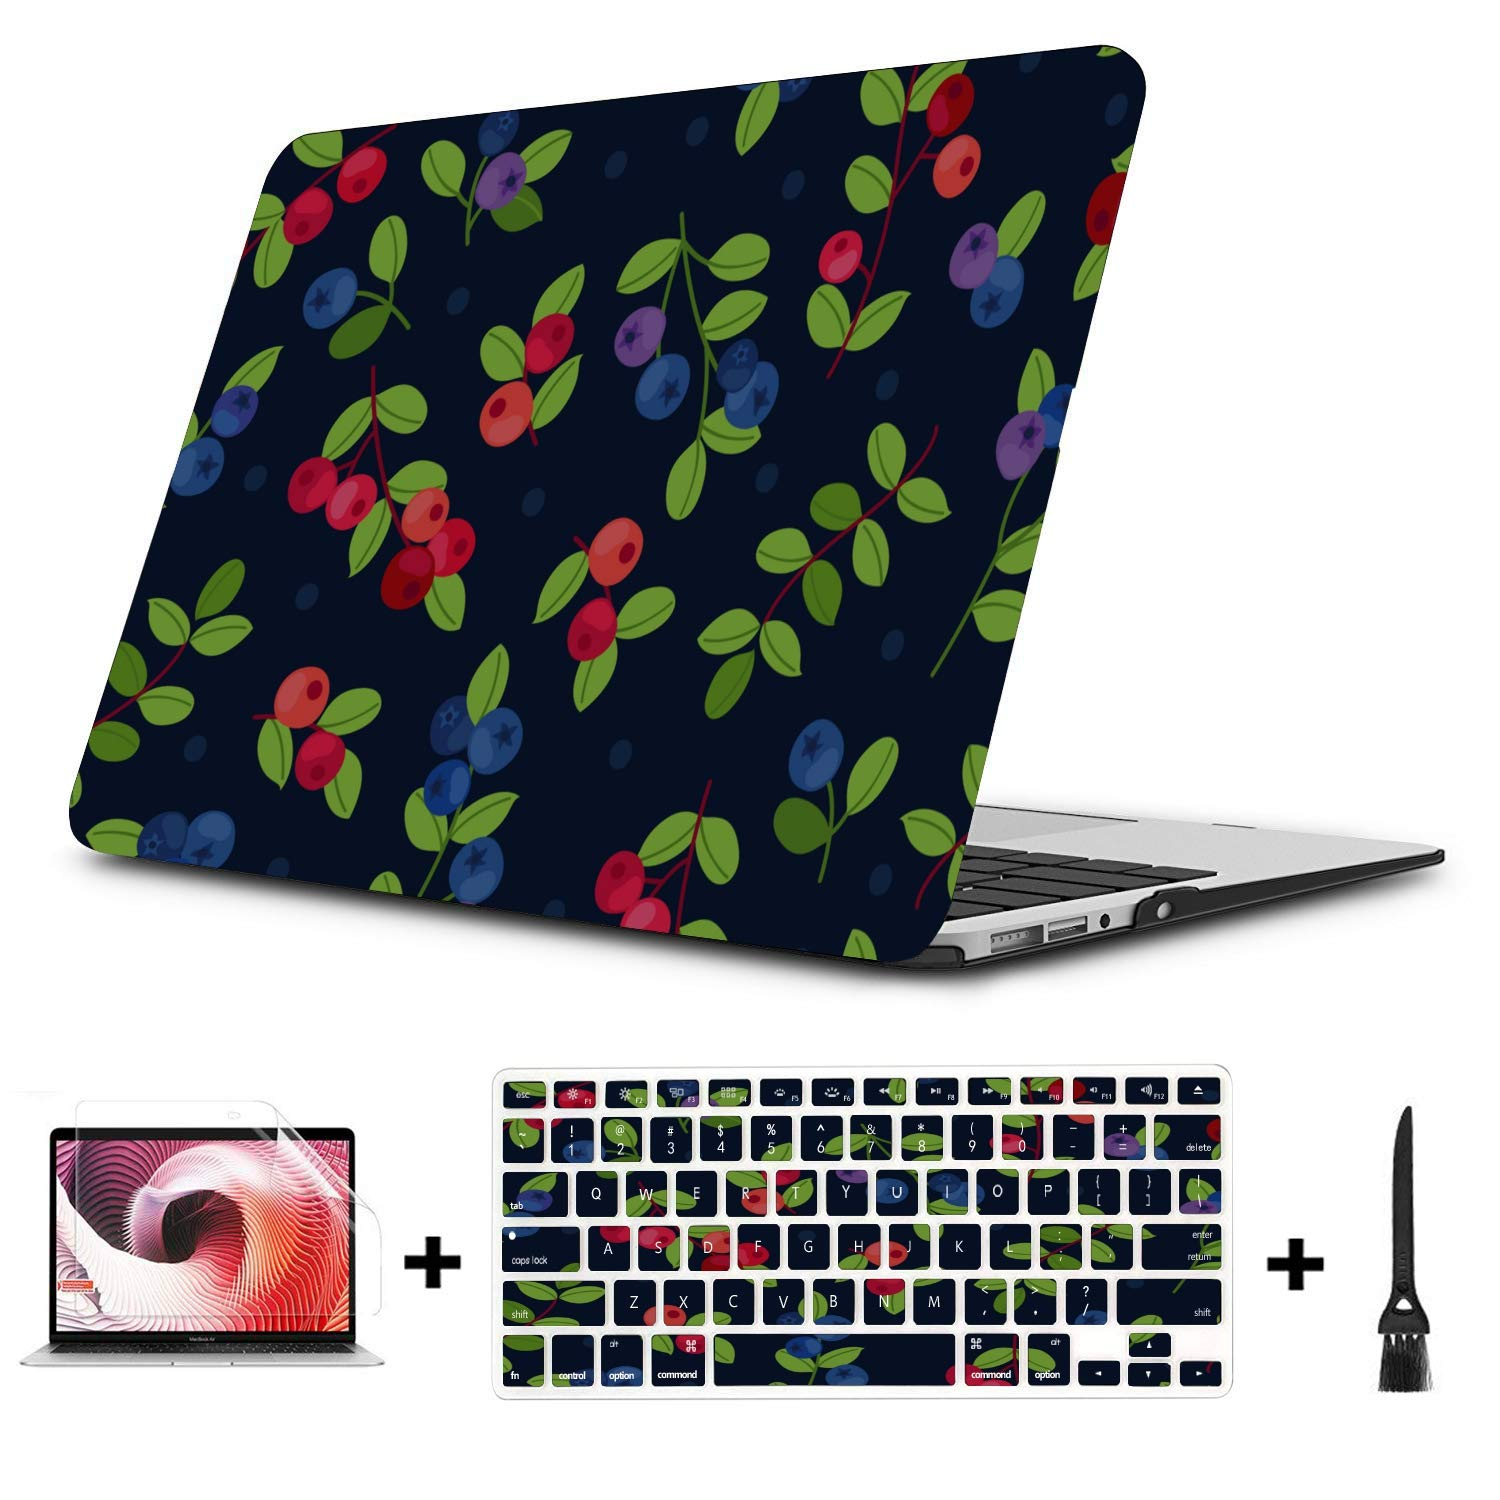 Mac Case Summer Fruit Cherry Blueberry Drink Plastic Hard Shell Compatible Mac Air 11 Pro 13 15 Laptop Cover Protection for MacBook 2016-2019 Version